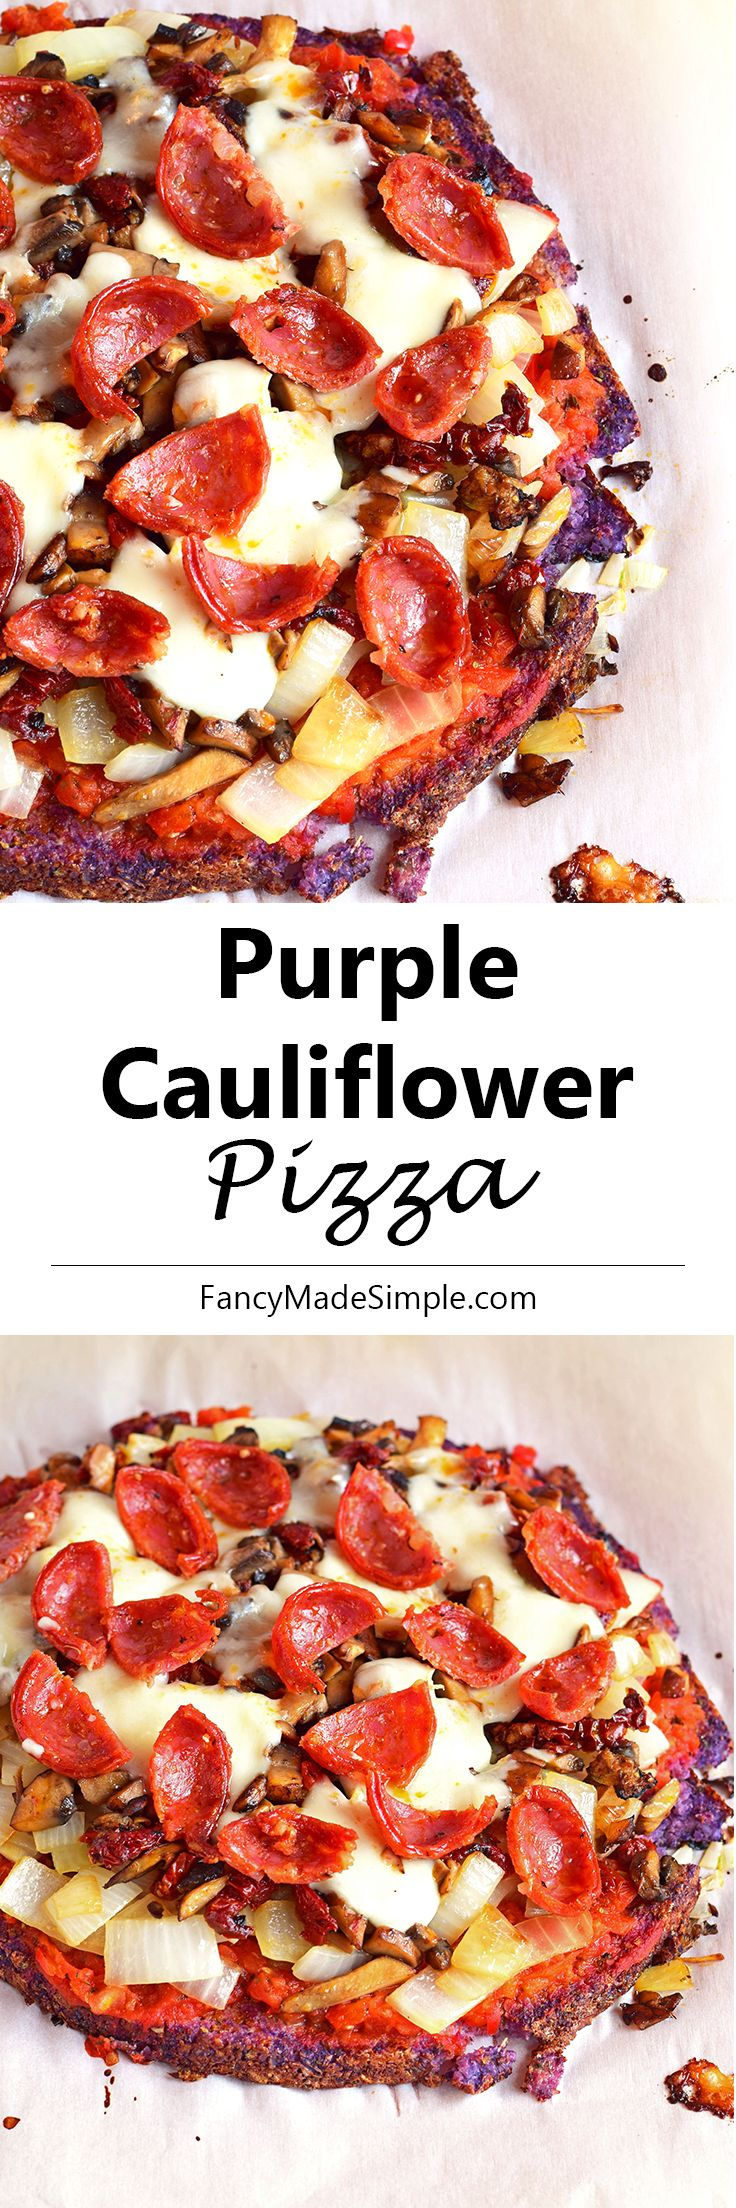 Blue apron cauliflower pizza